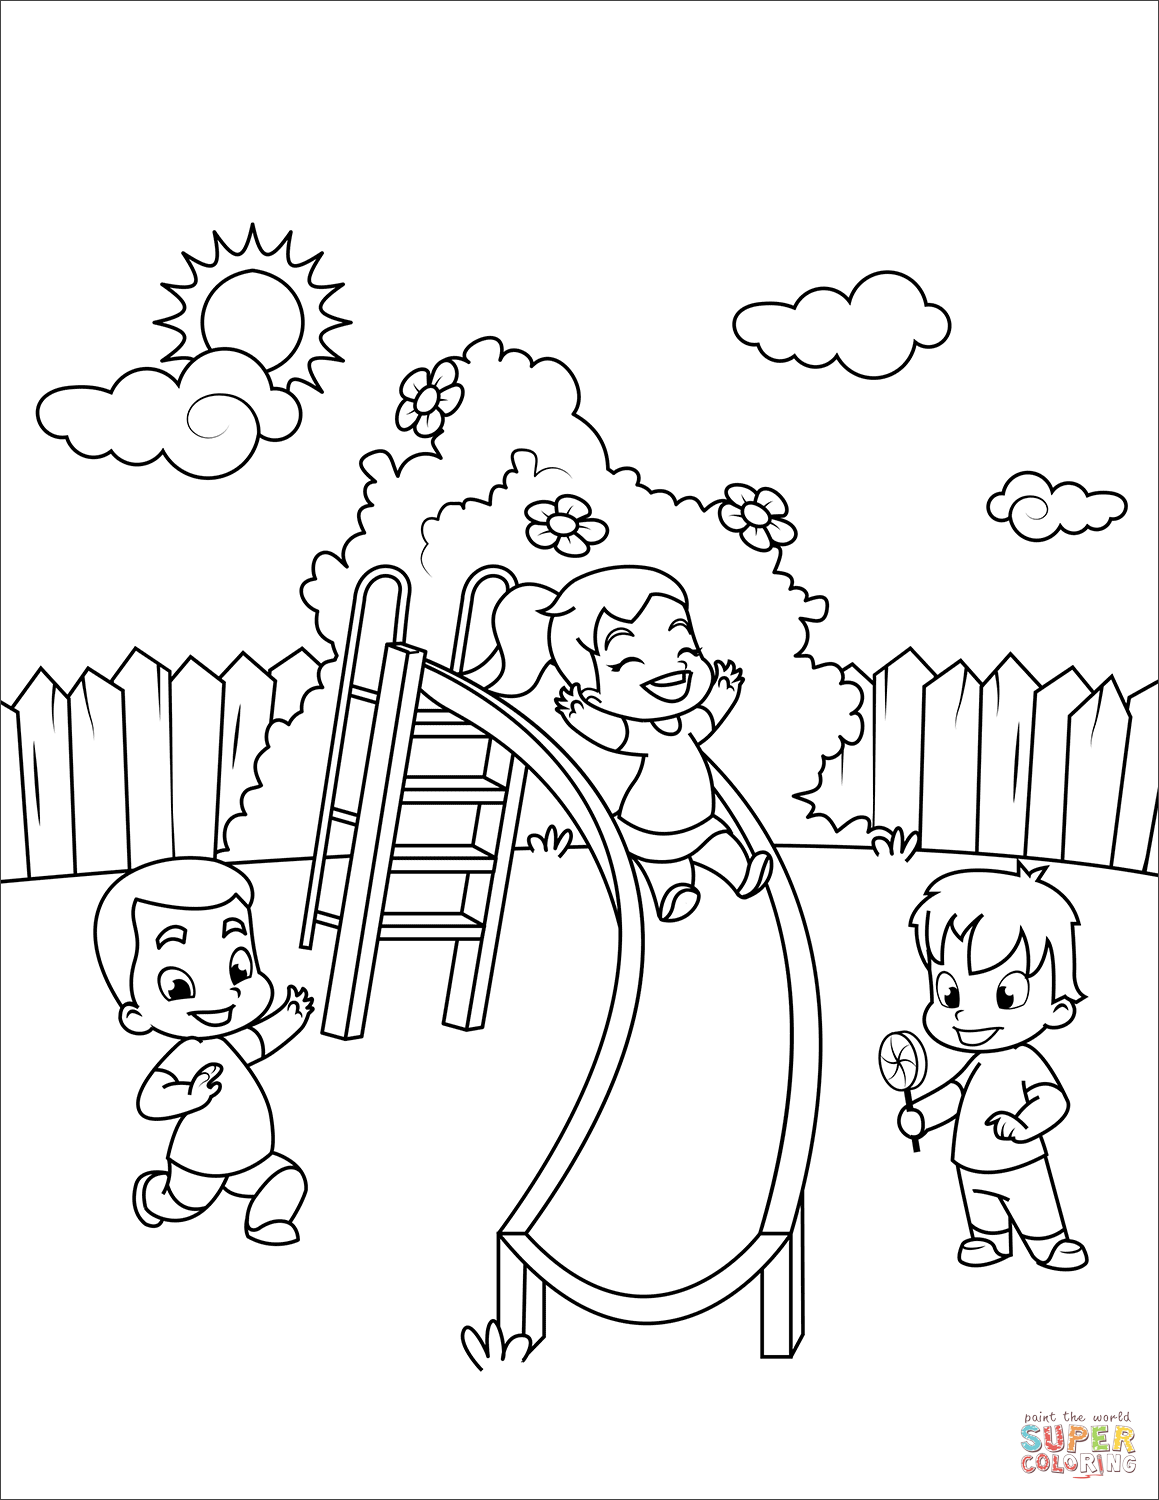 Children Go Down A Slide Coloring Page